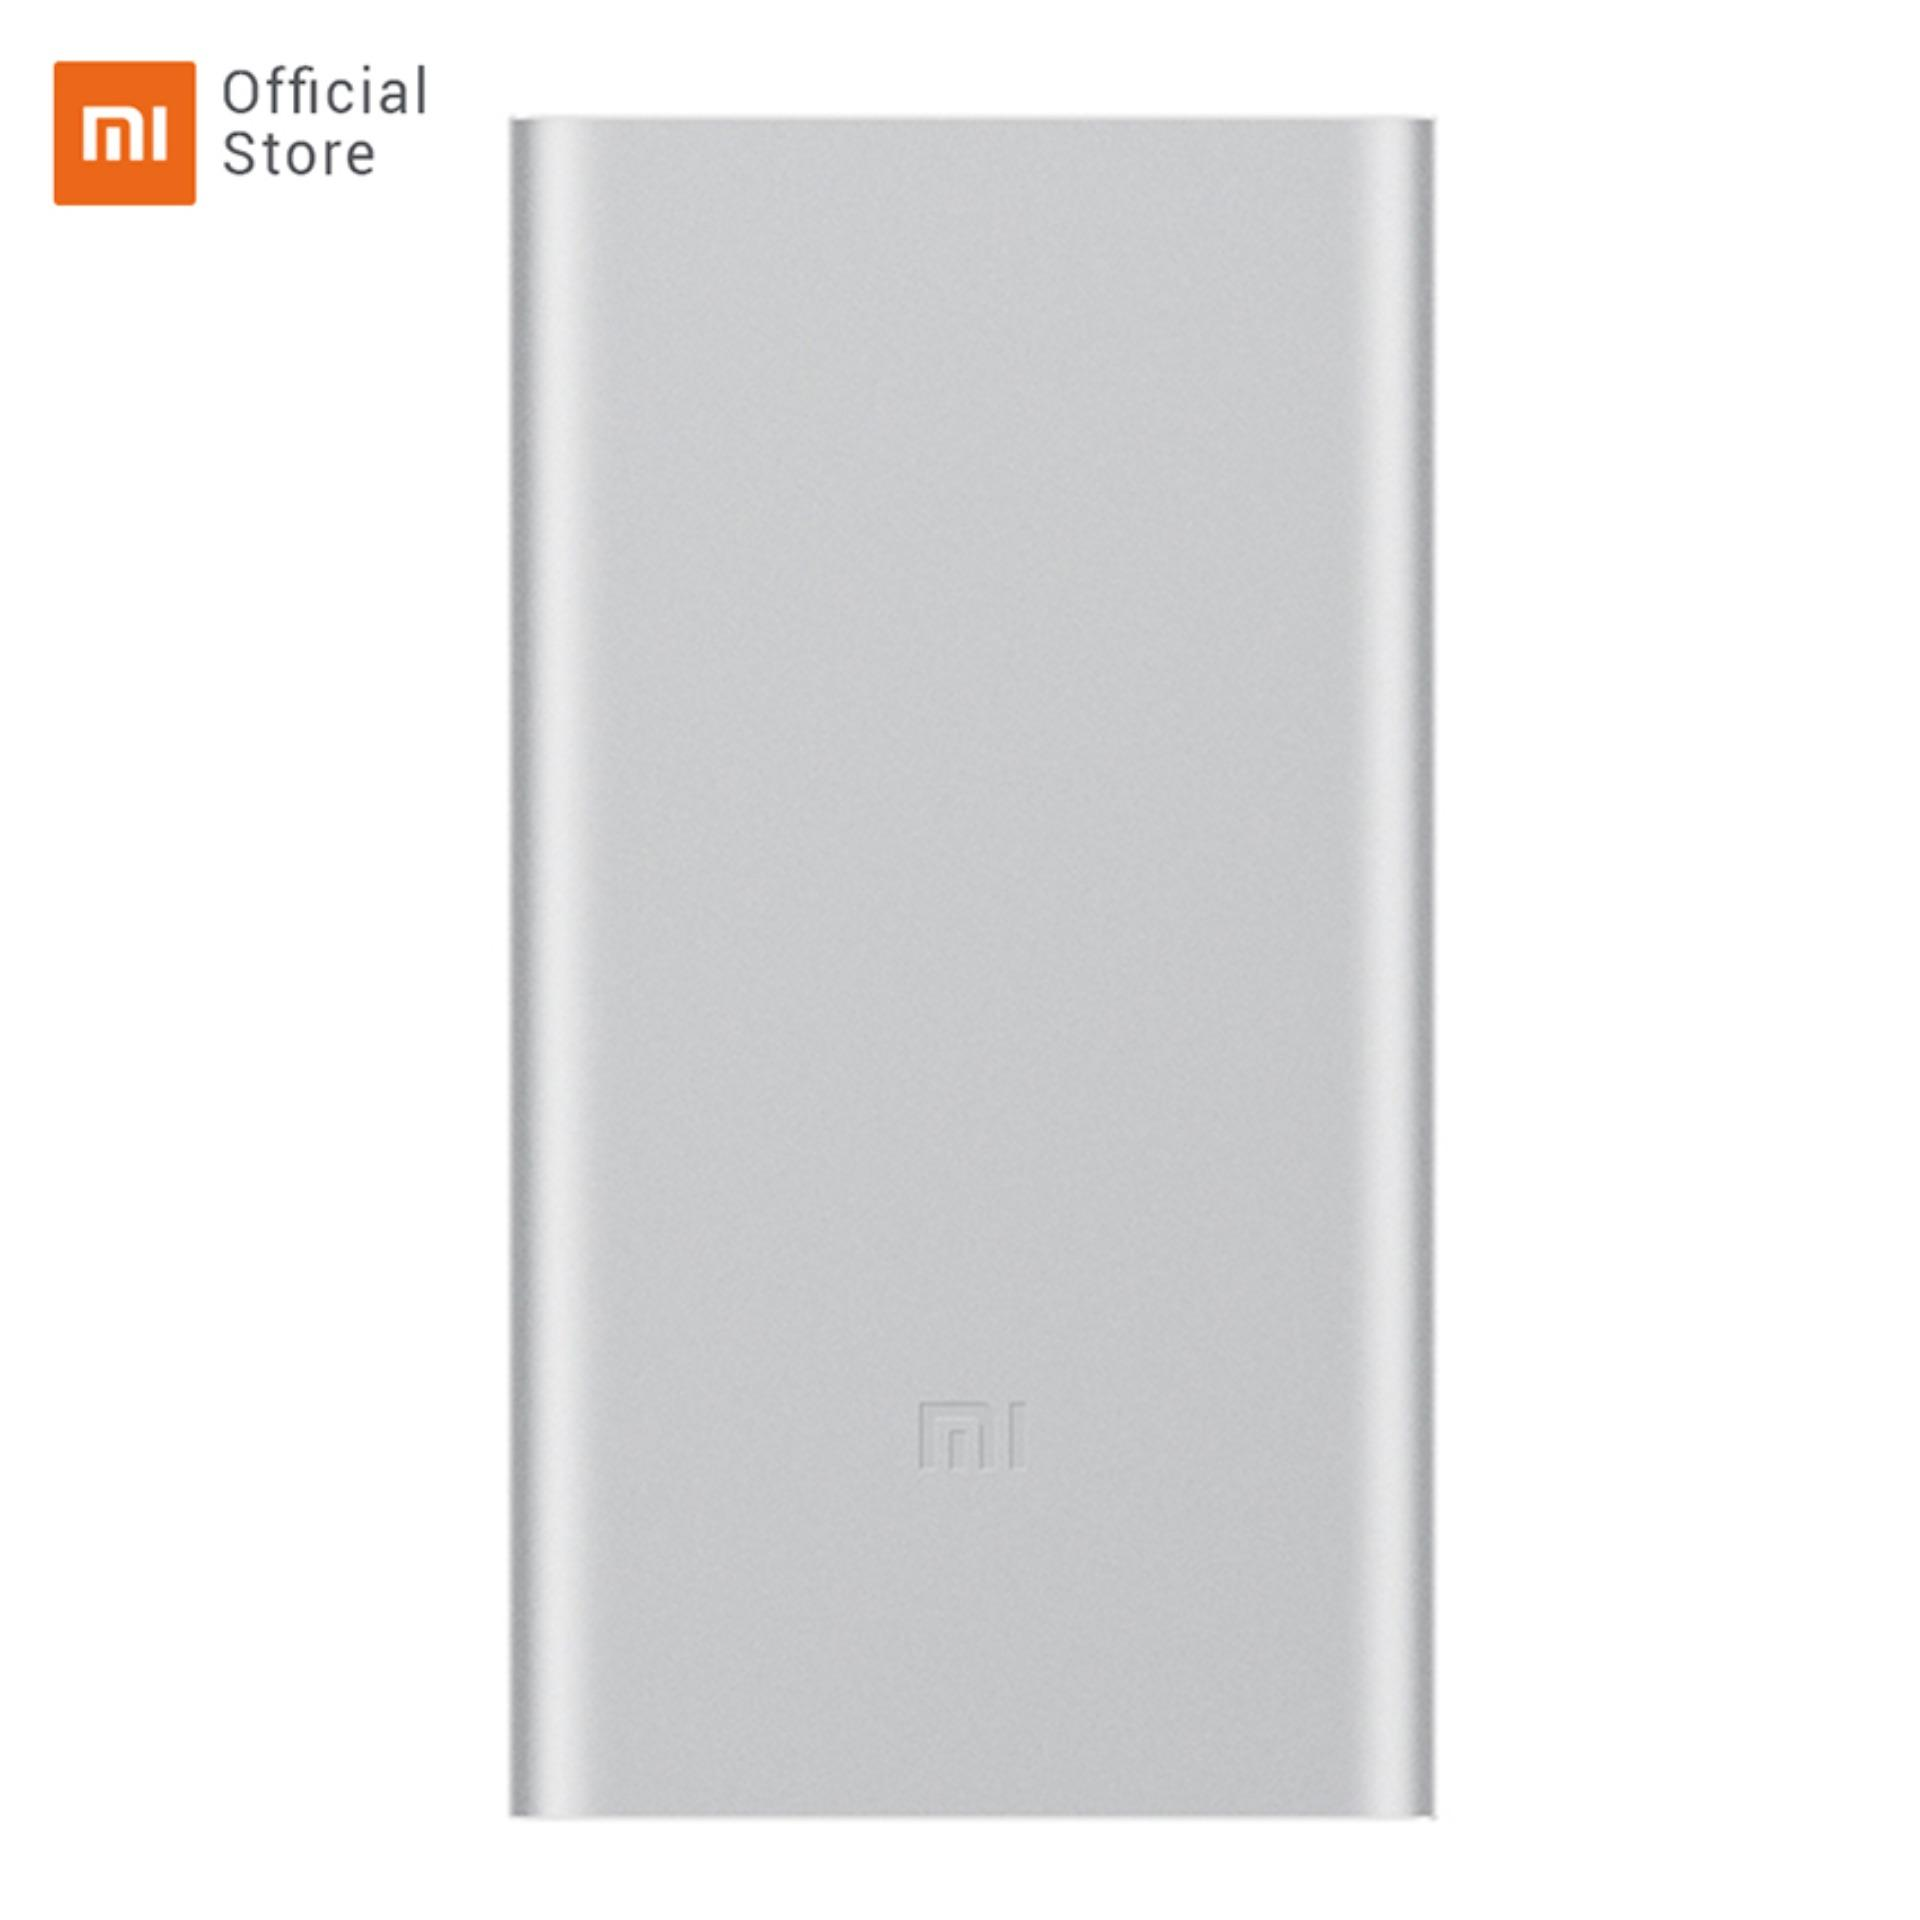 Xiaomi Mi Power Bank 10000mAh - Silver